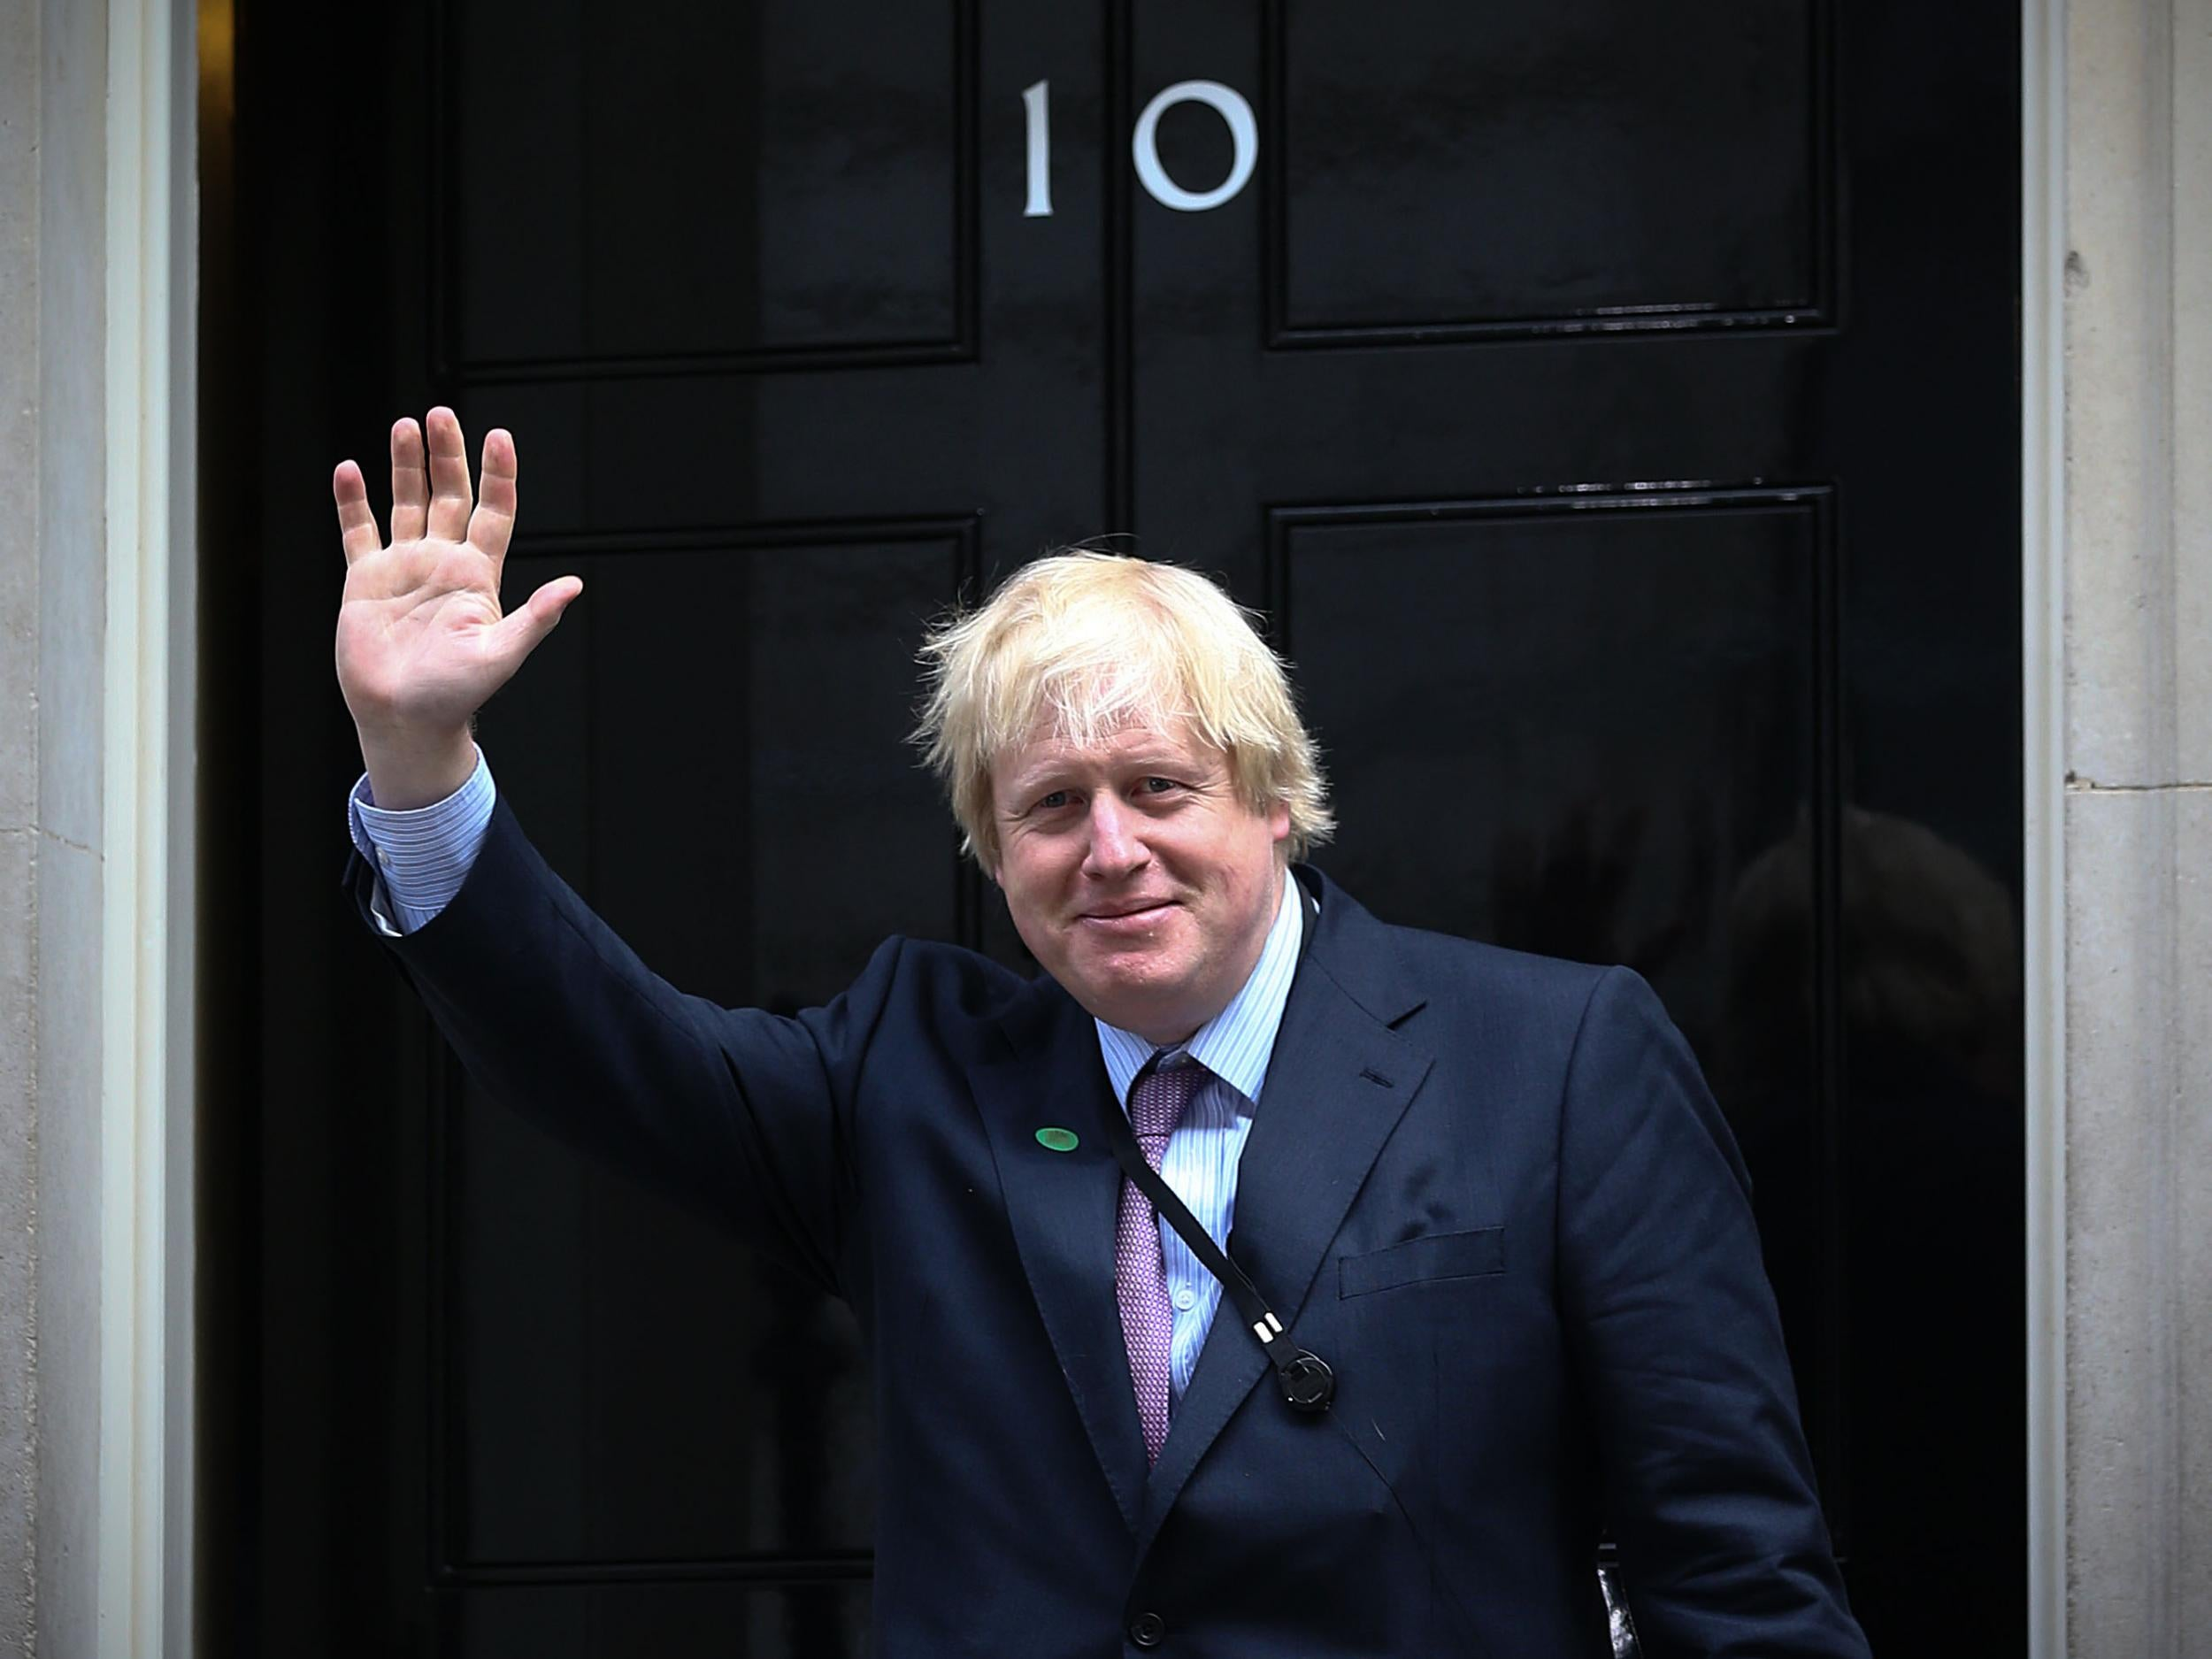 What is Boris Johnson's voting record on Brexit, climate change and benefits?